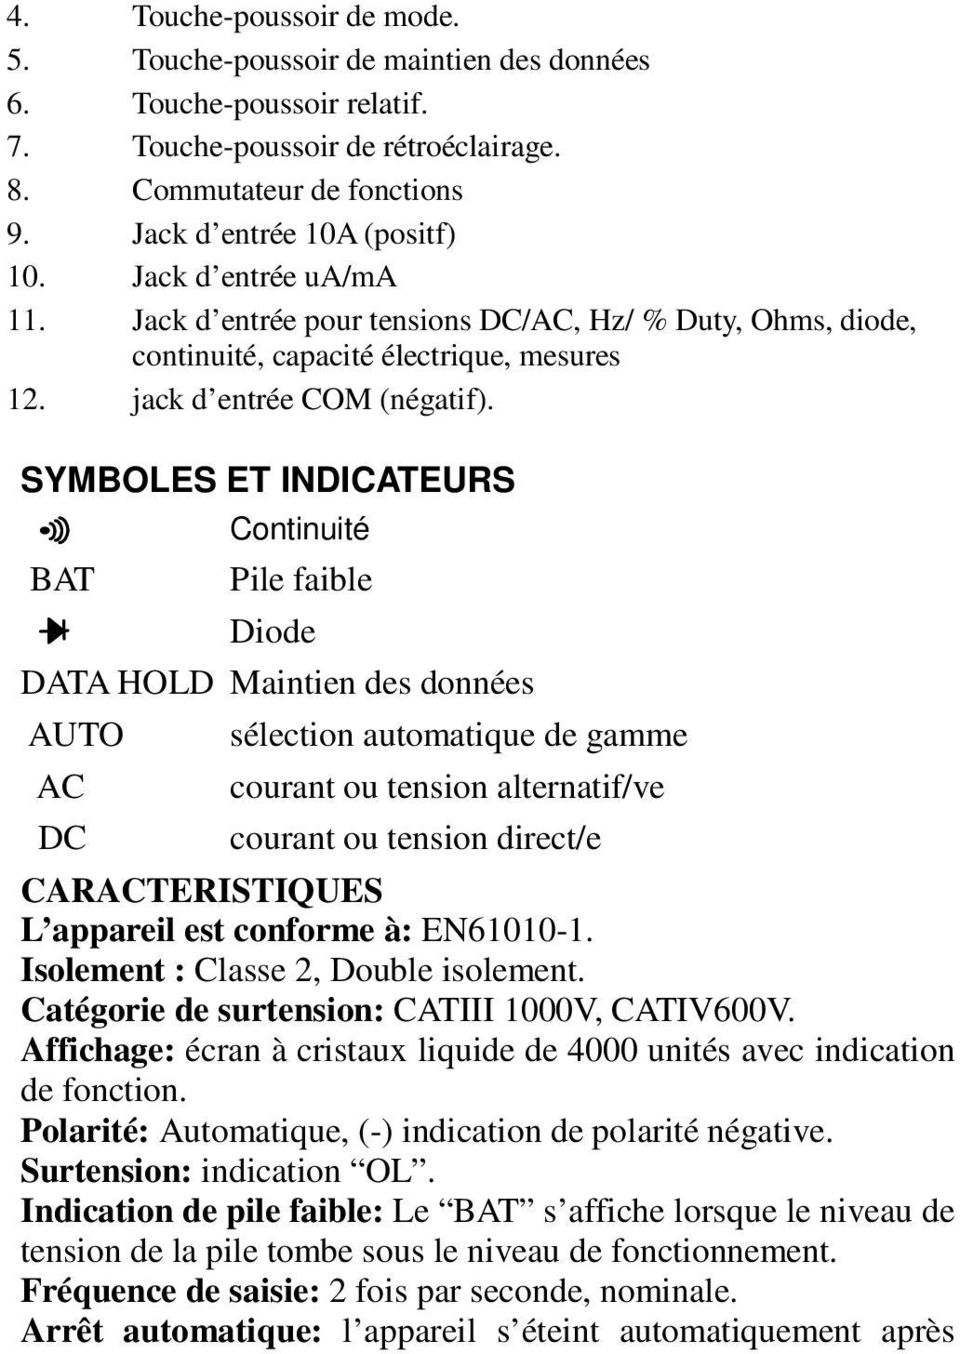 SYMBOLES ET INDICATEURS BAT Continuité Pile faible Diode DATA HOLD Maintien des données AUTO AC DC sélection automatique de gamme courant ou tension alternatif/ve courant ou tension direct/e